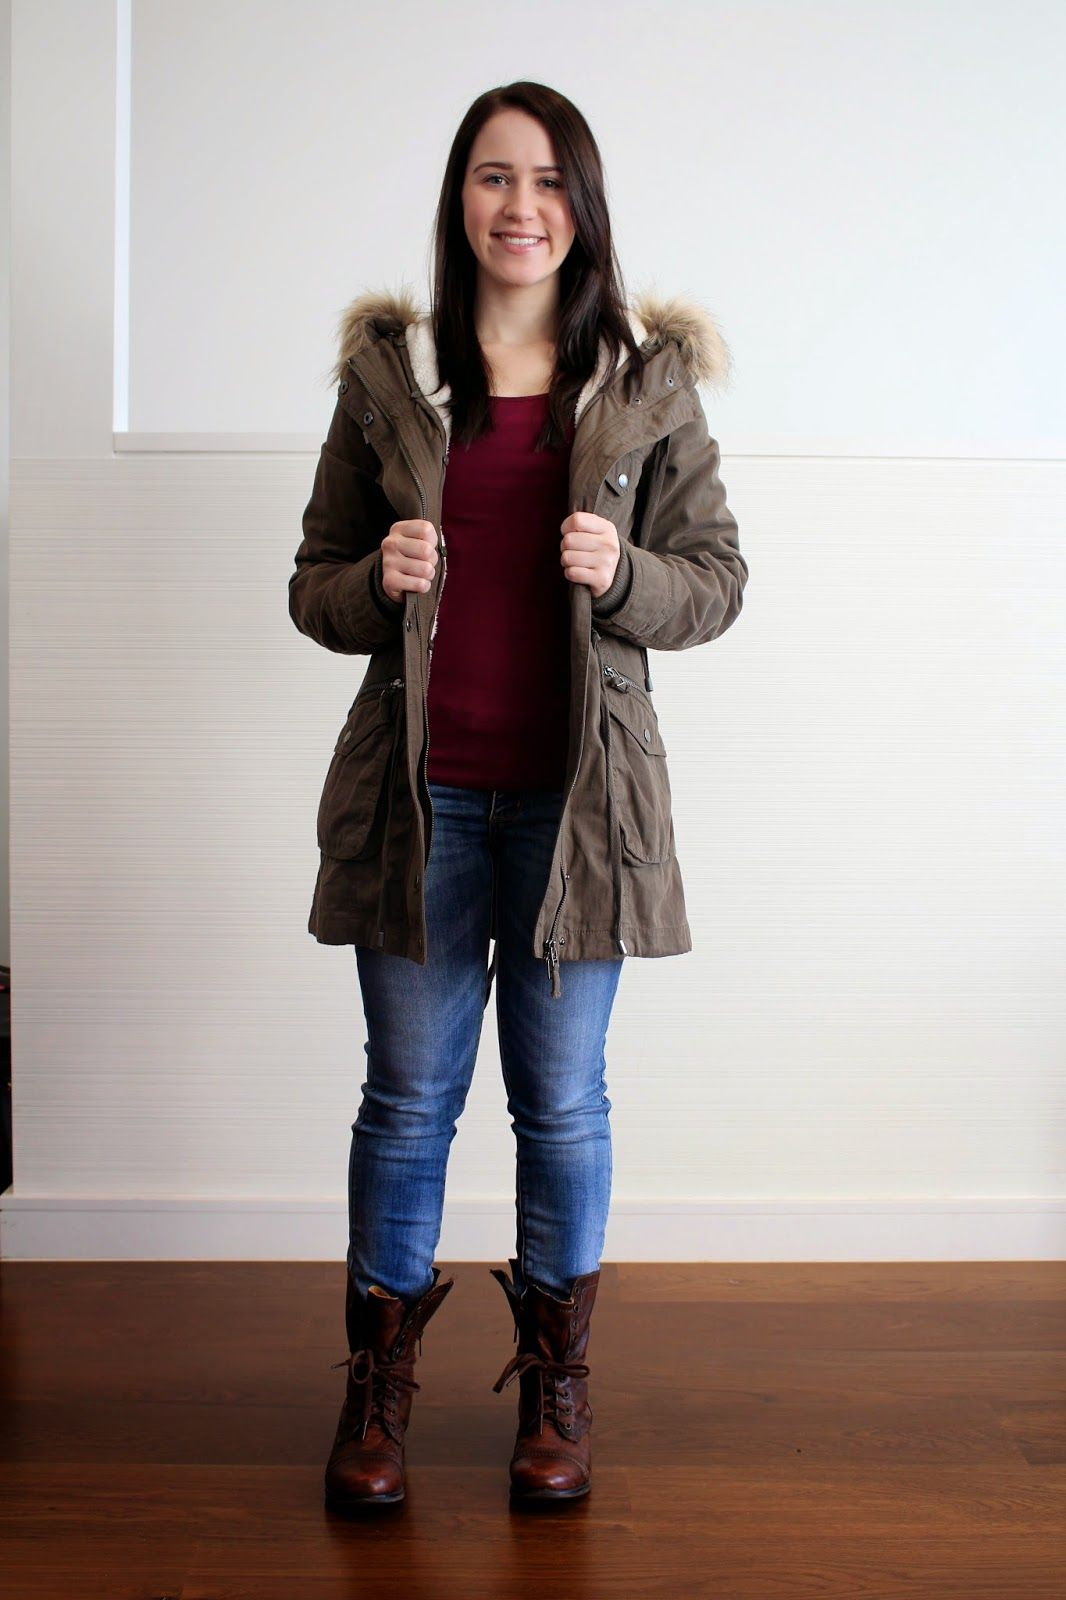 Casual winter day outfit khaki jacket jeans u0026 combat boots | Brieu0026#39;s Petite World | Pinterest ...